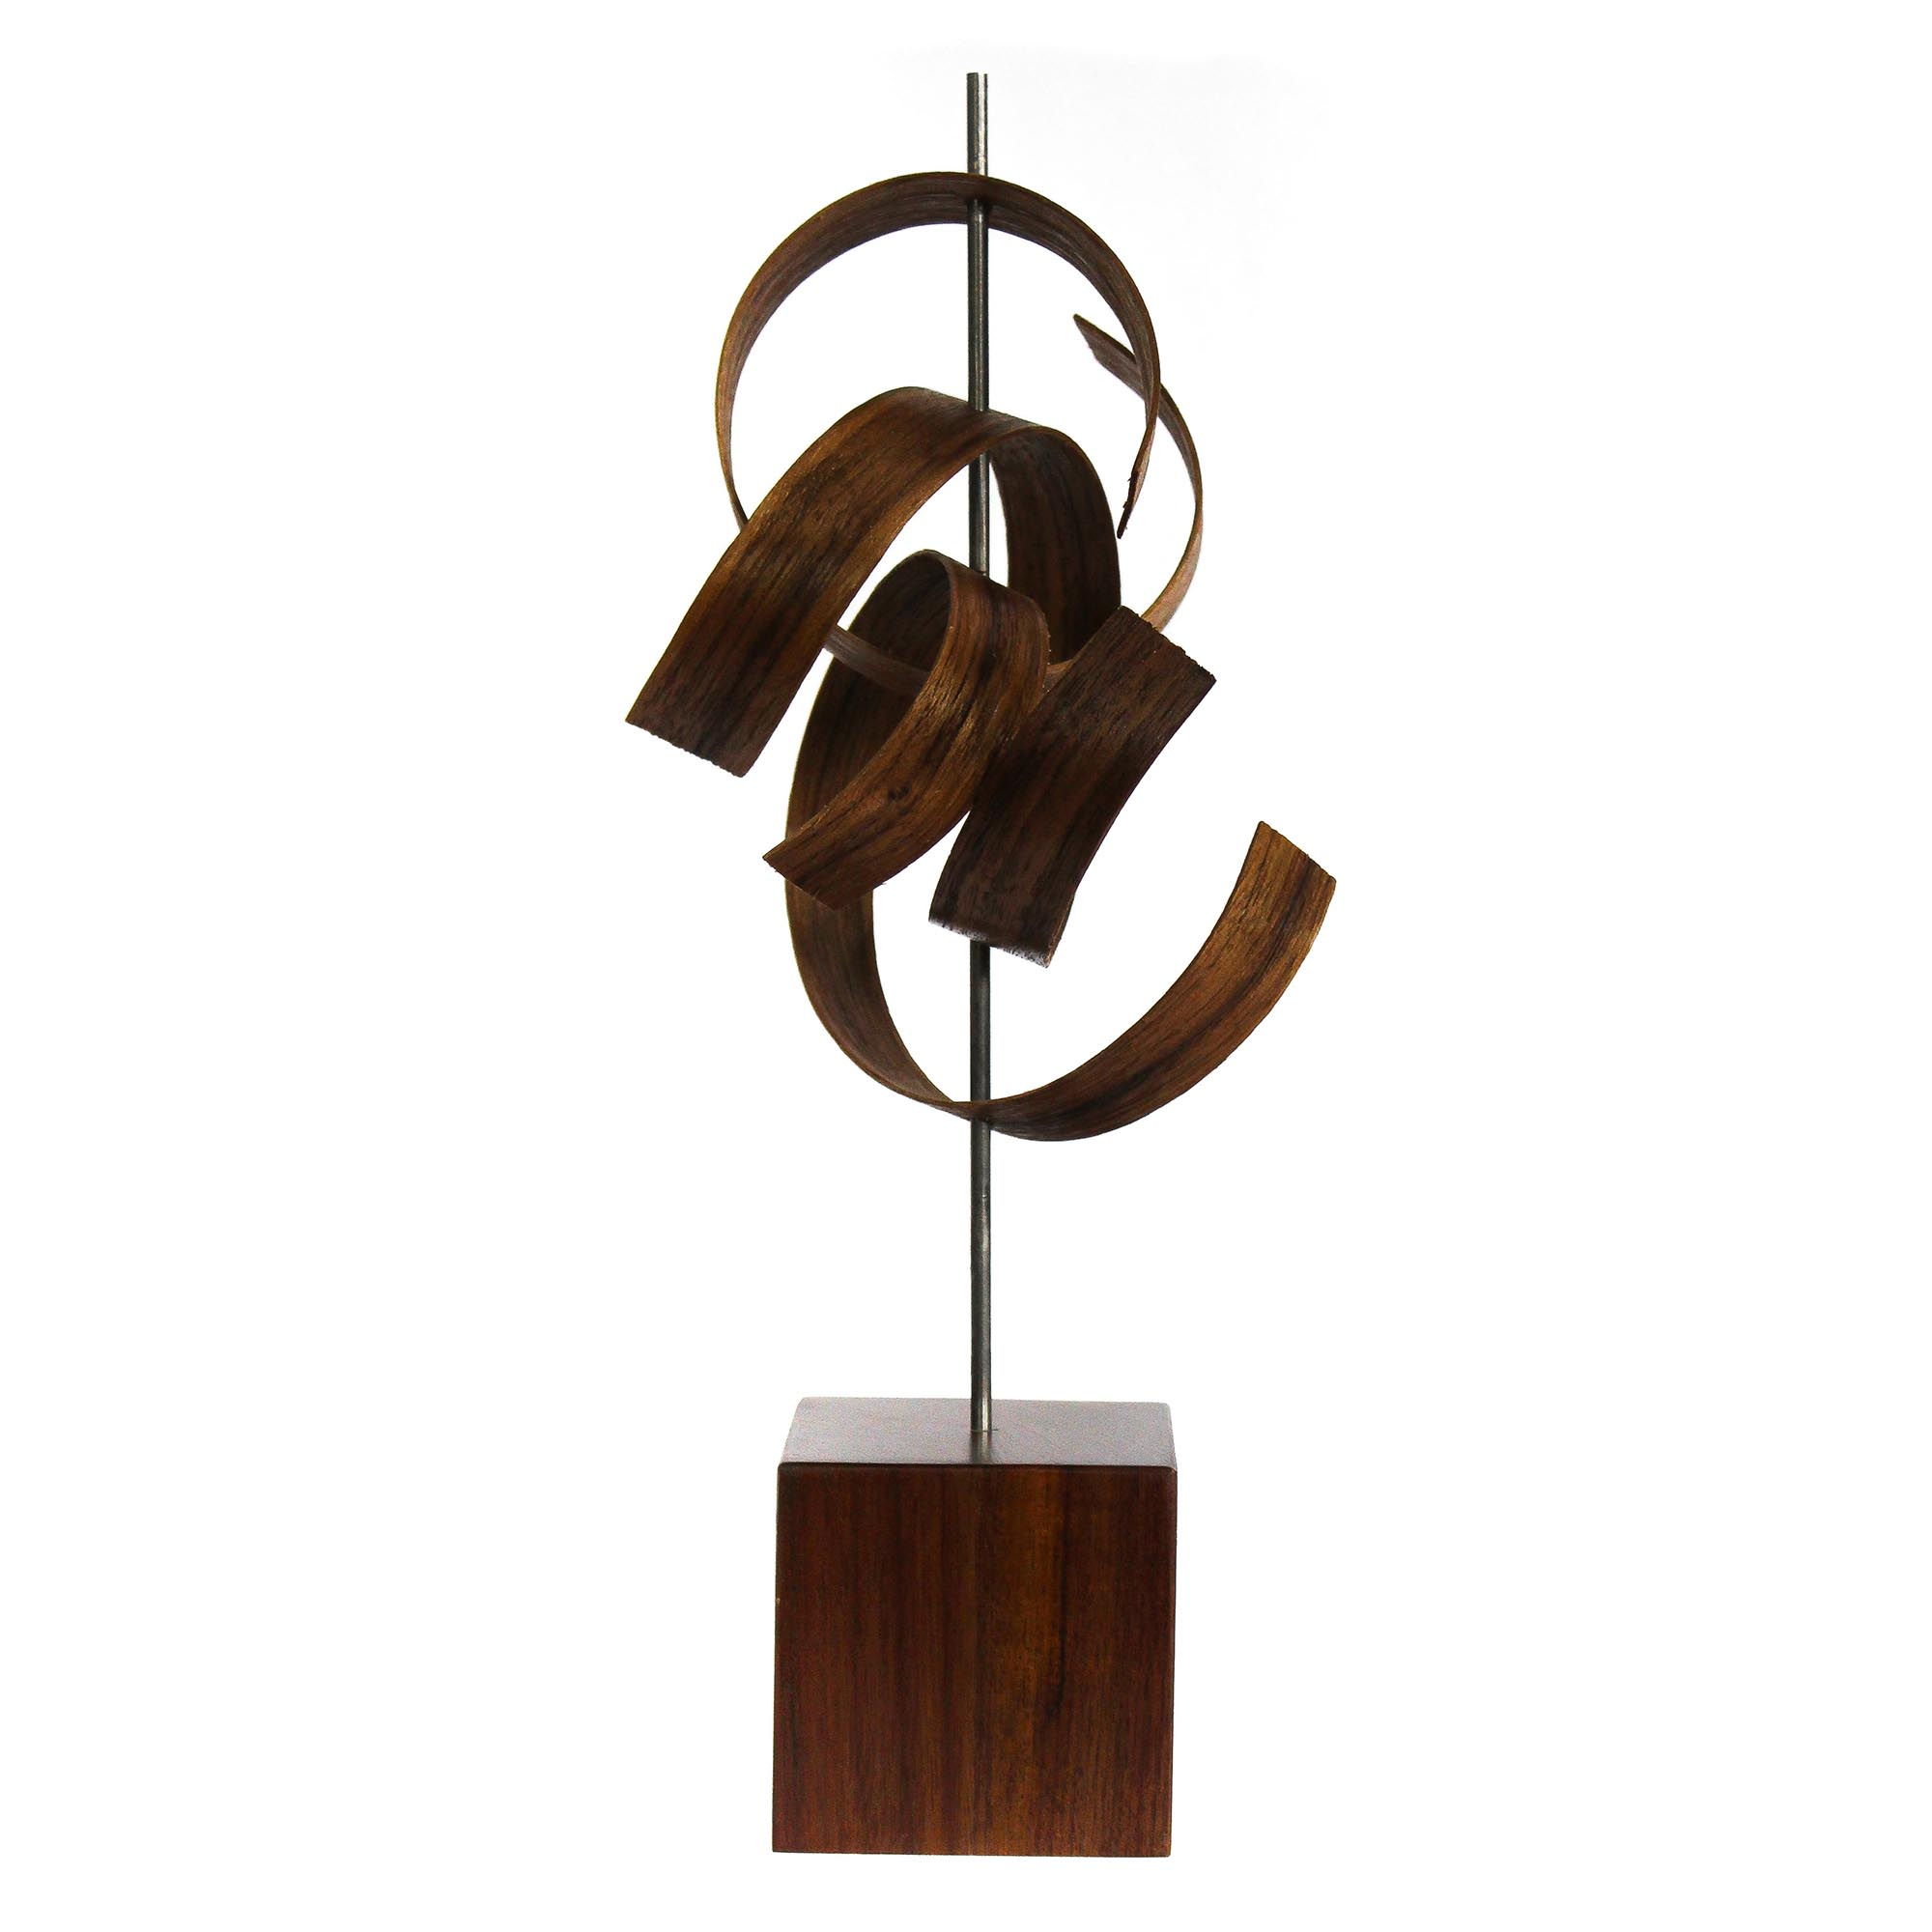 Scribble by Jackson Wright - Modern Wood Sculpture, Mid-Century Home Decor - Image 3